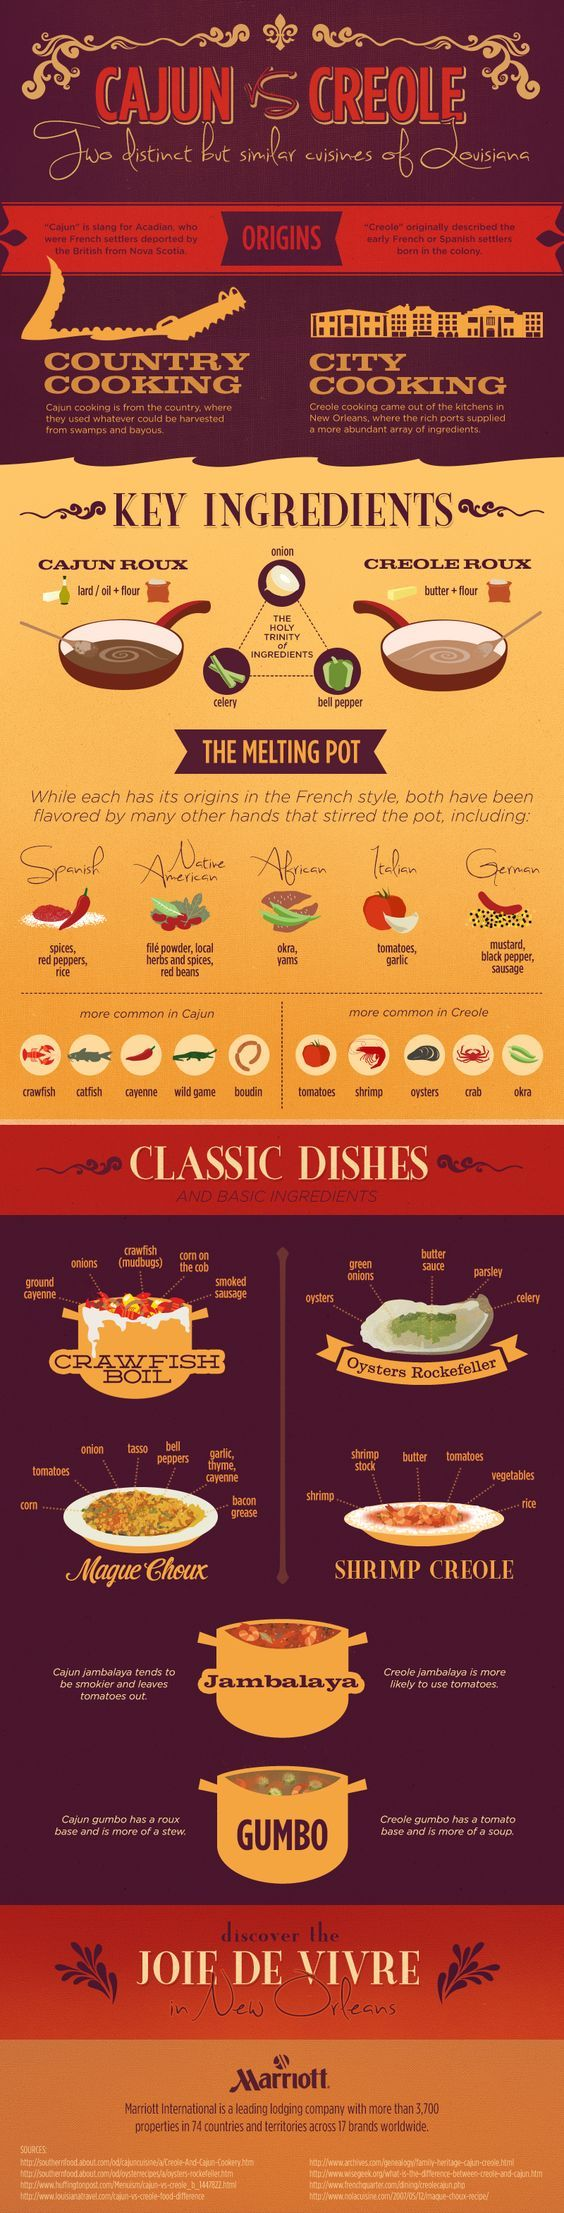 Ever wonder what the difference is between Cajun and Creole cuisine? Here's a quick explanation!: #cajundishes